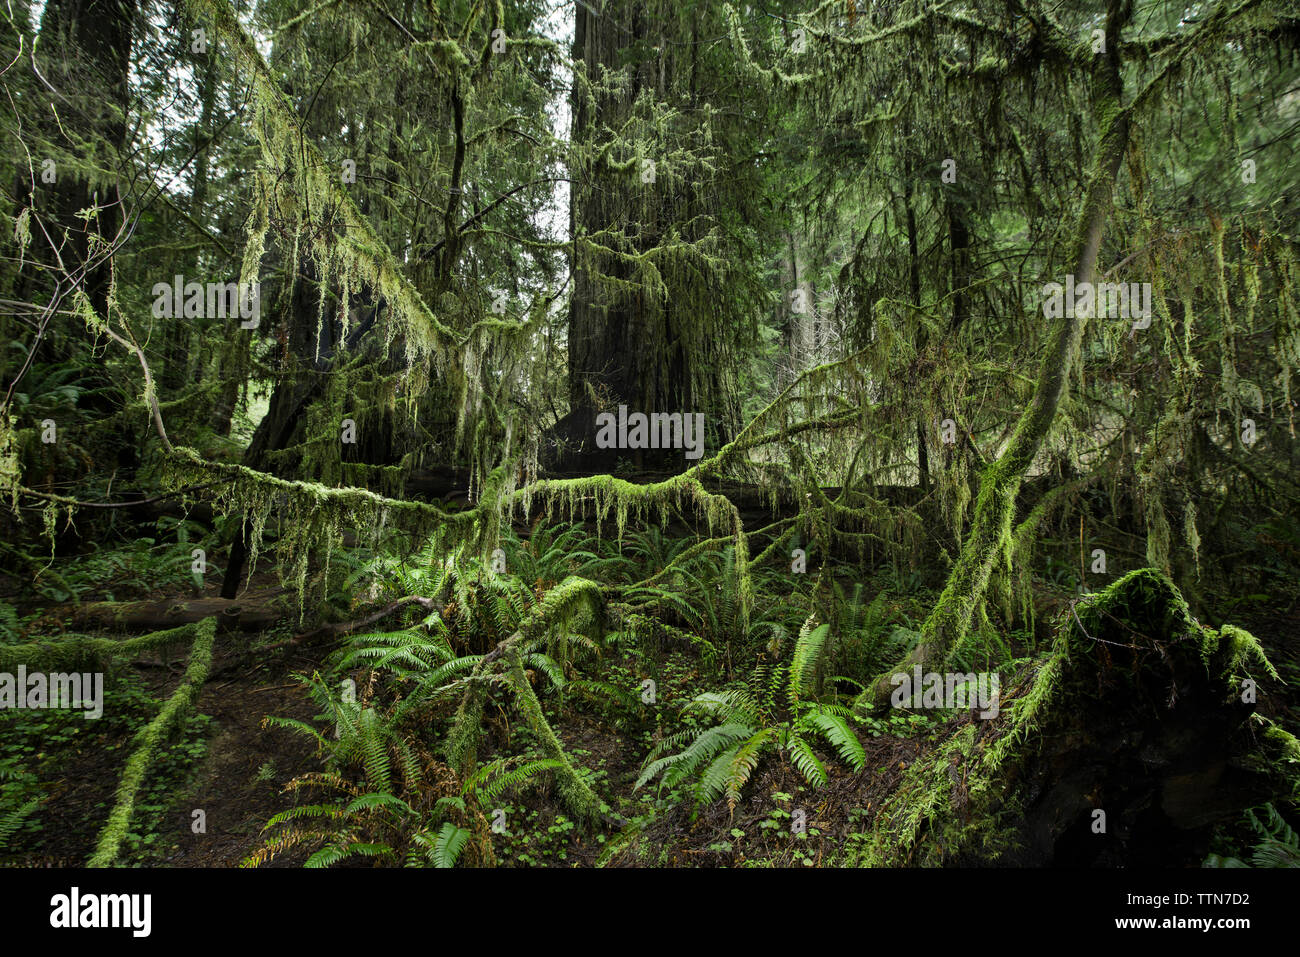 Plants growing at Jedediah Smith Redwoods State Park - Stock Image